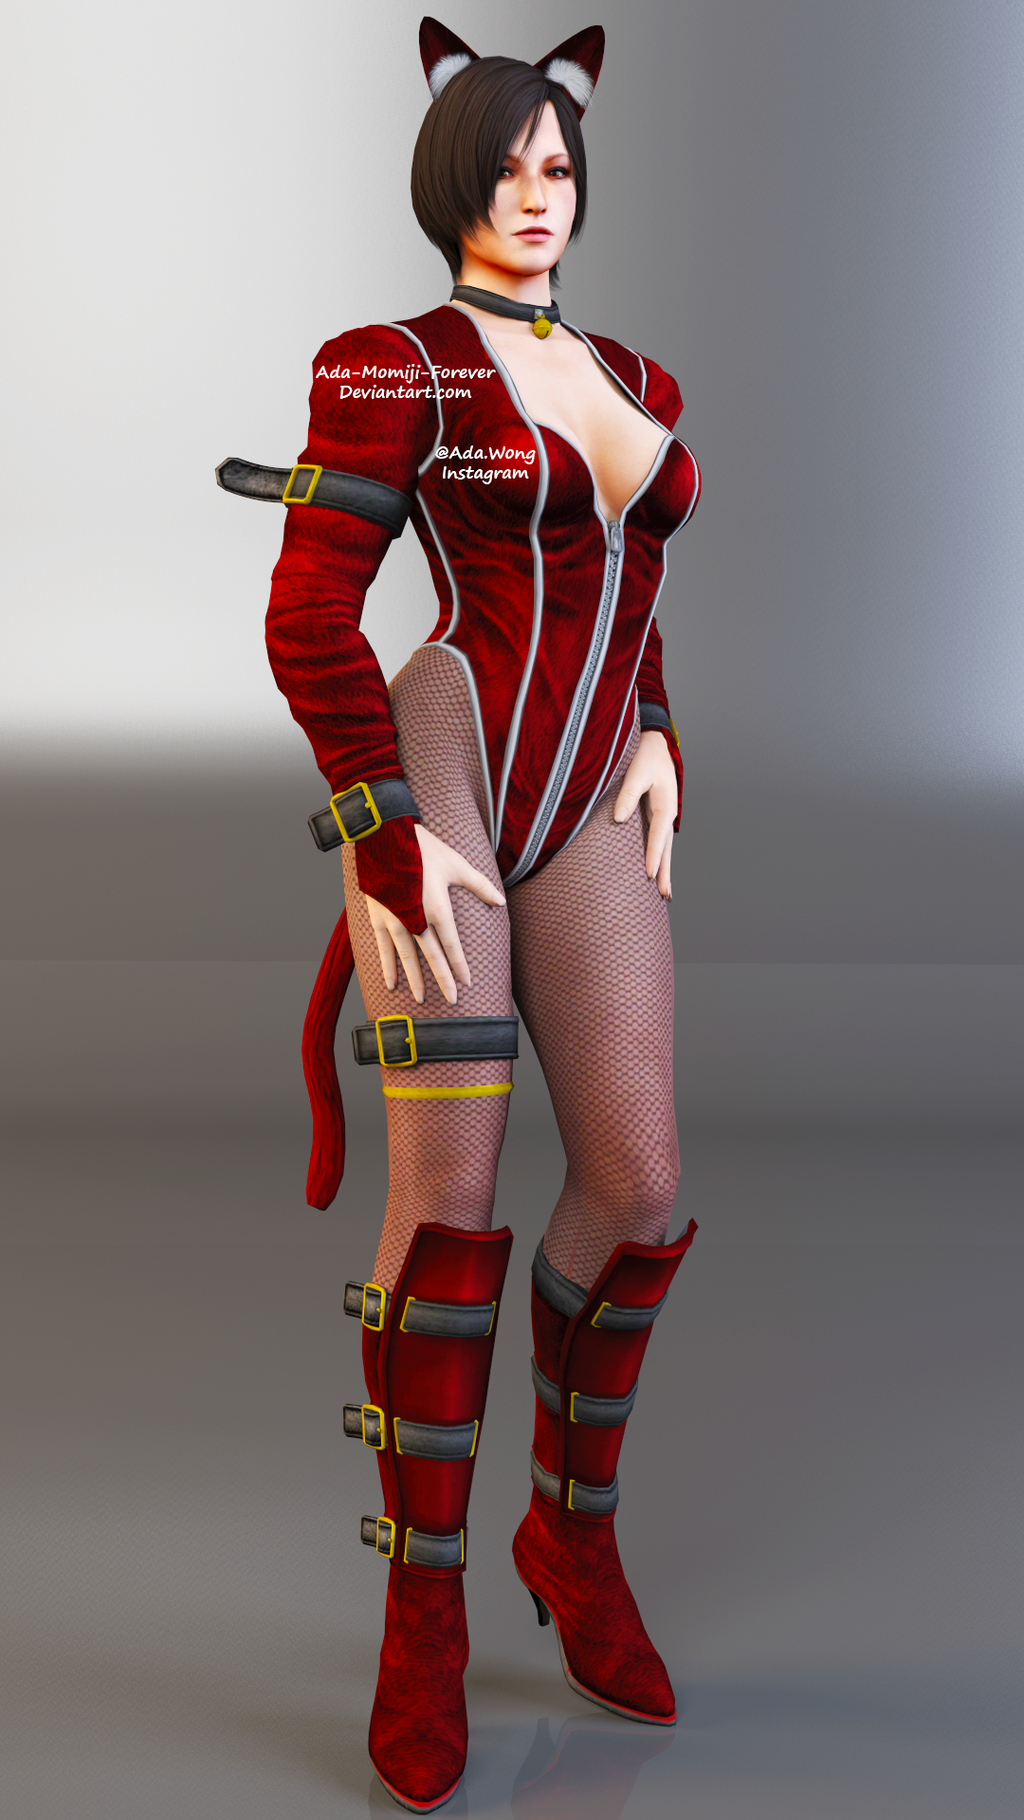 Ada wong hentai pic porncraft images